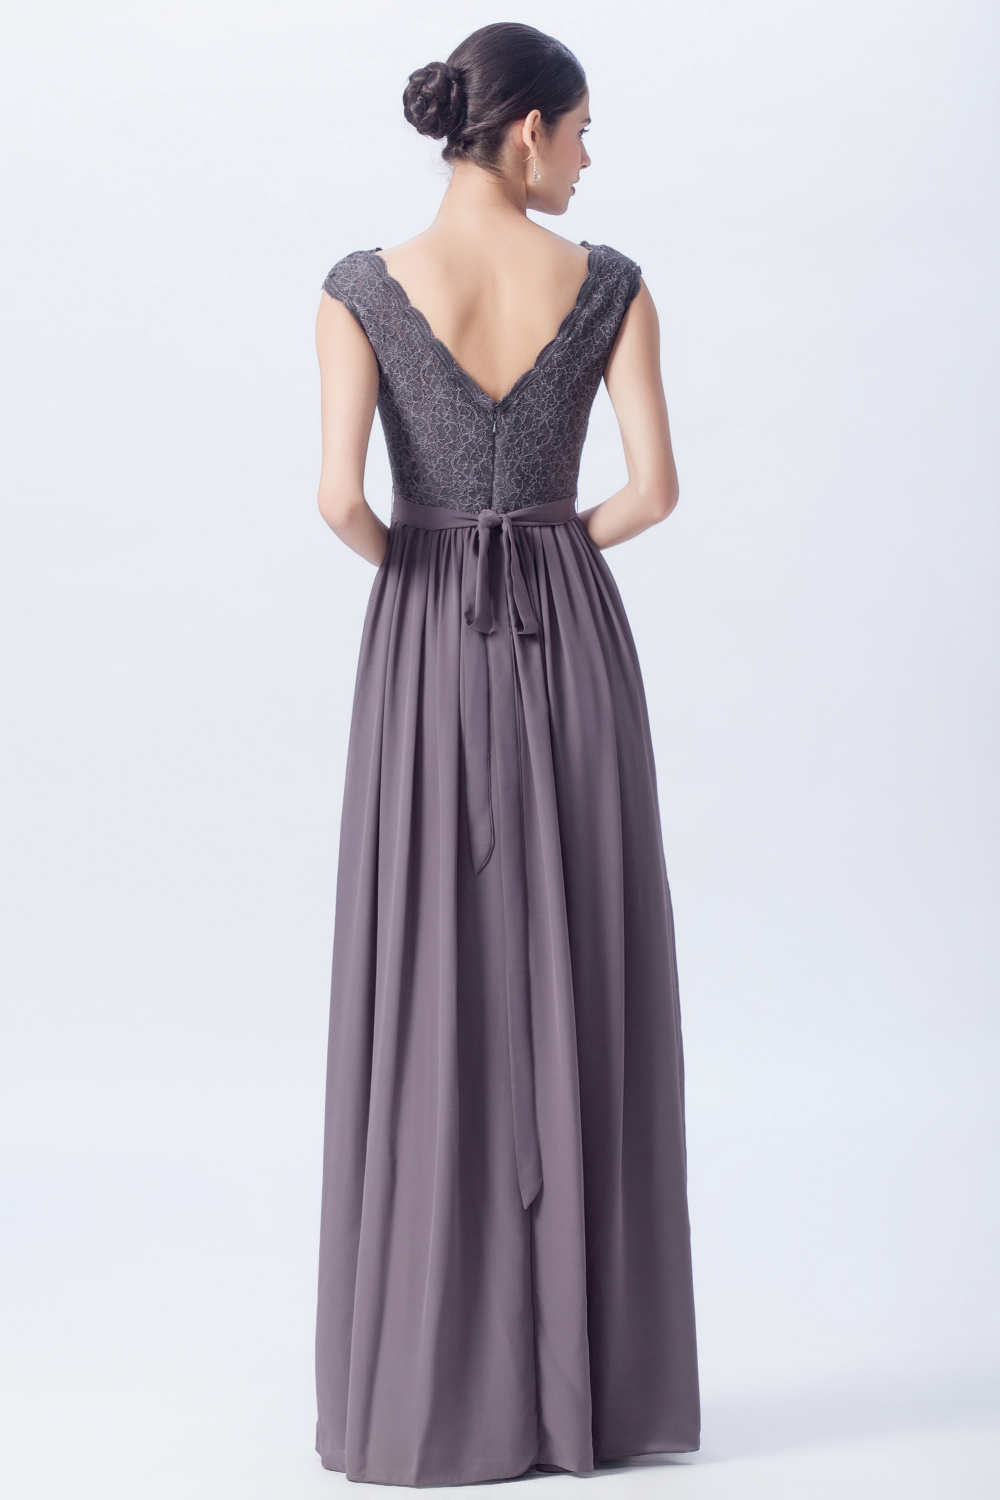 Off The Shoulder, Open Back Lace Bridesmaid Gowns – Champagne Taste ...